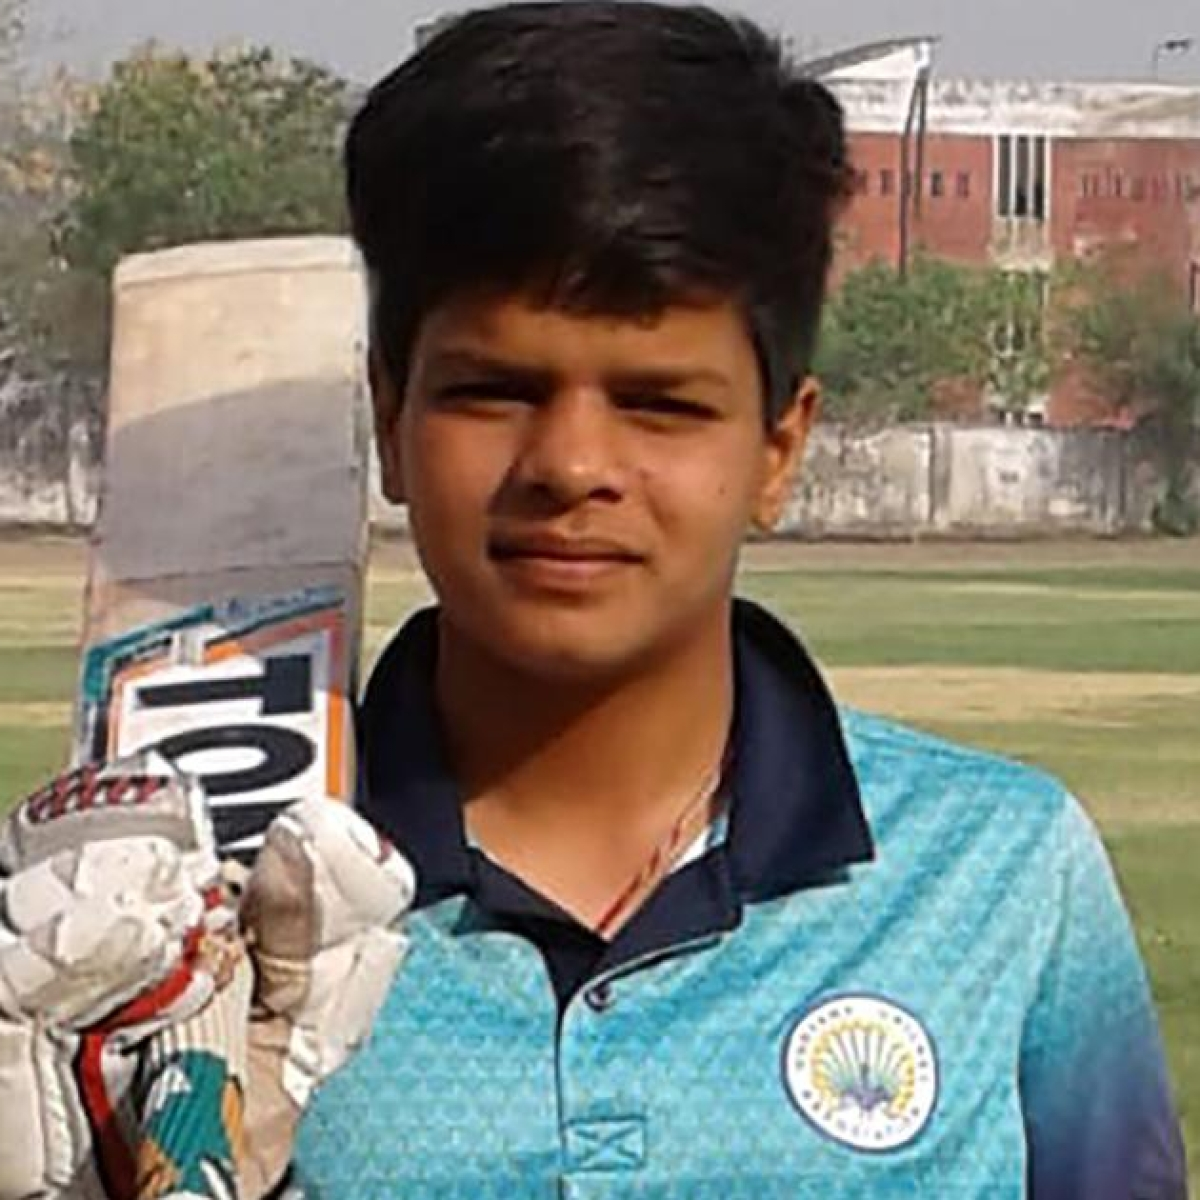 BCCI honours 15-year-old Shafali Verma